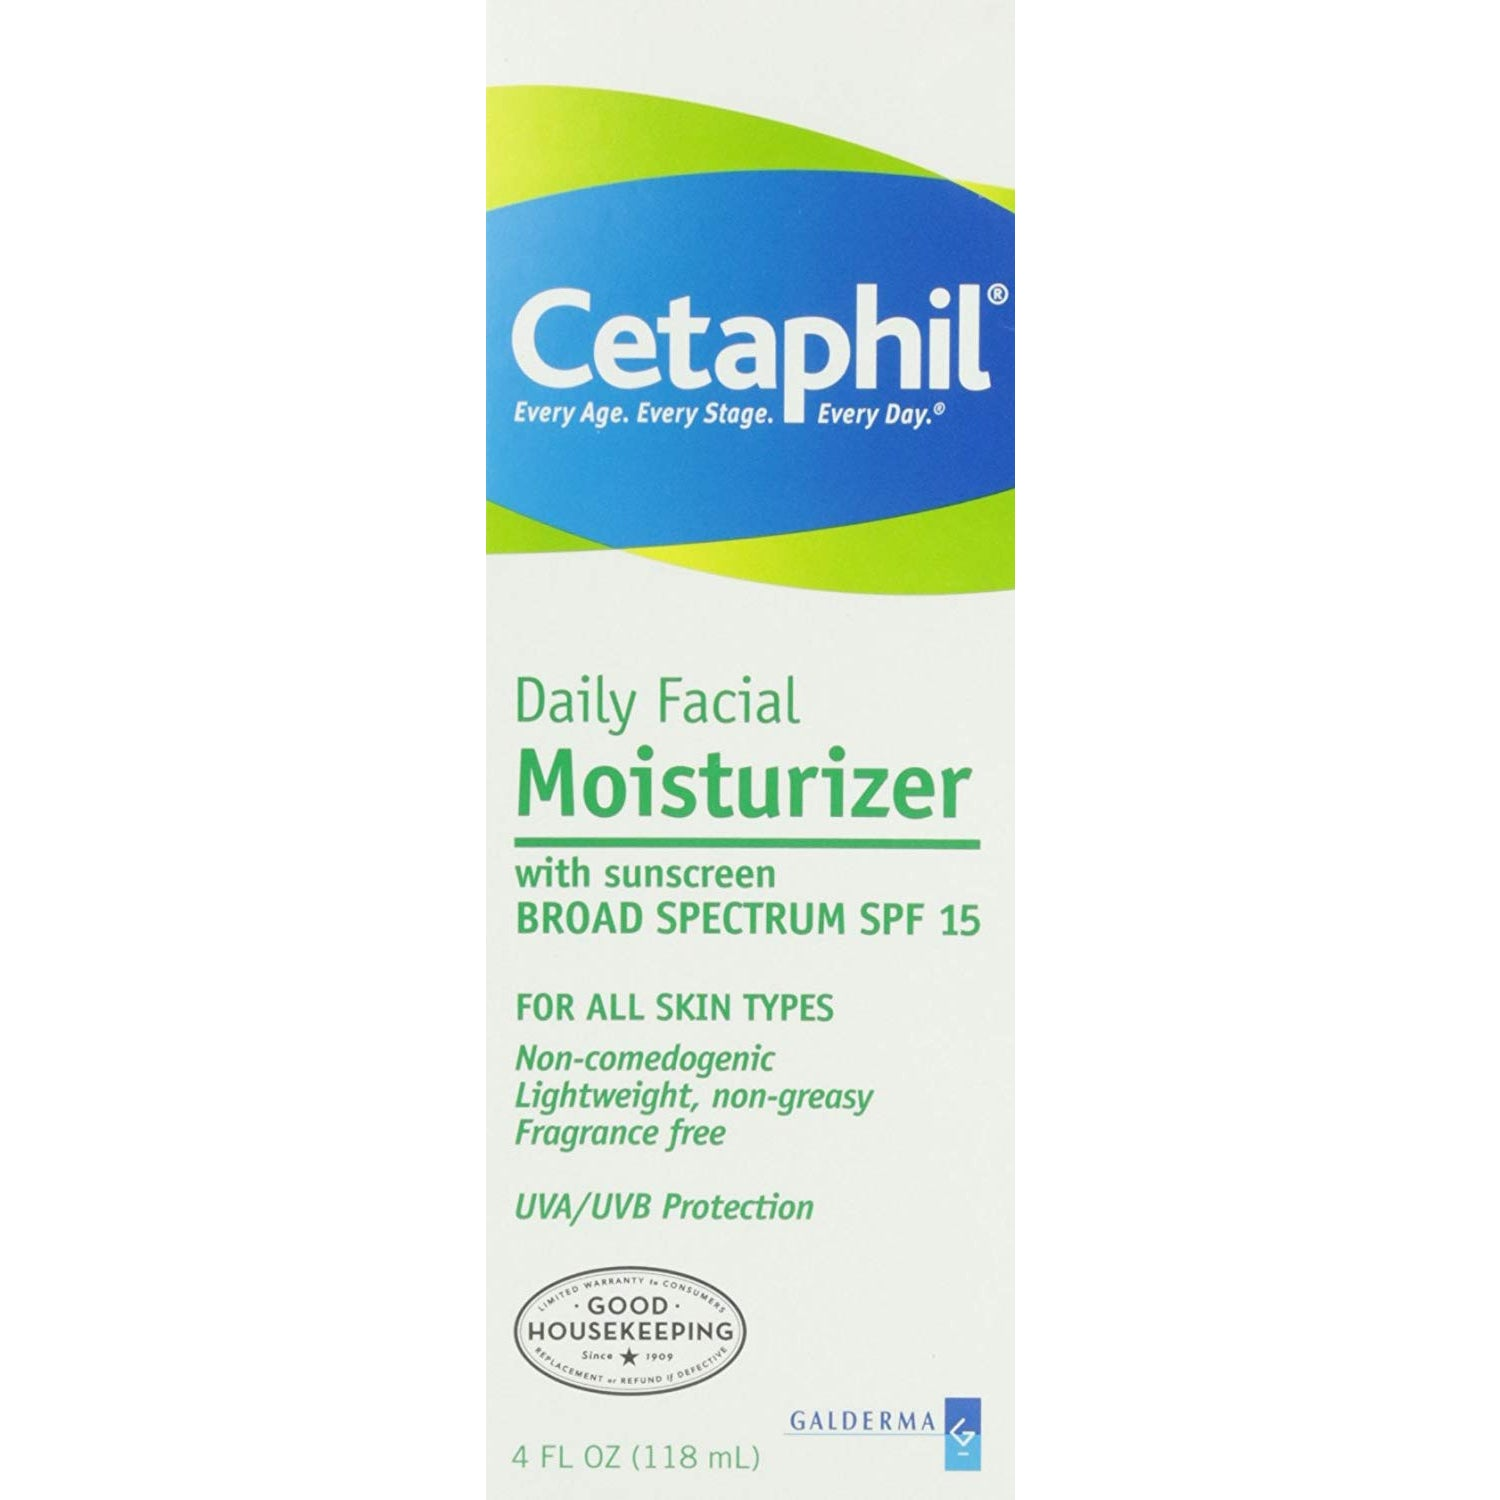 Cetaphil Daily Facial Moisturizer with Sunscreen Broad Spectrum SPF 15